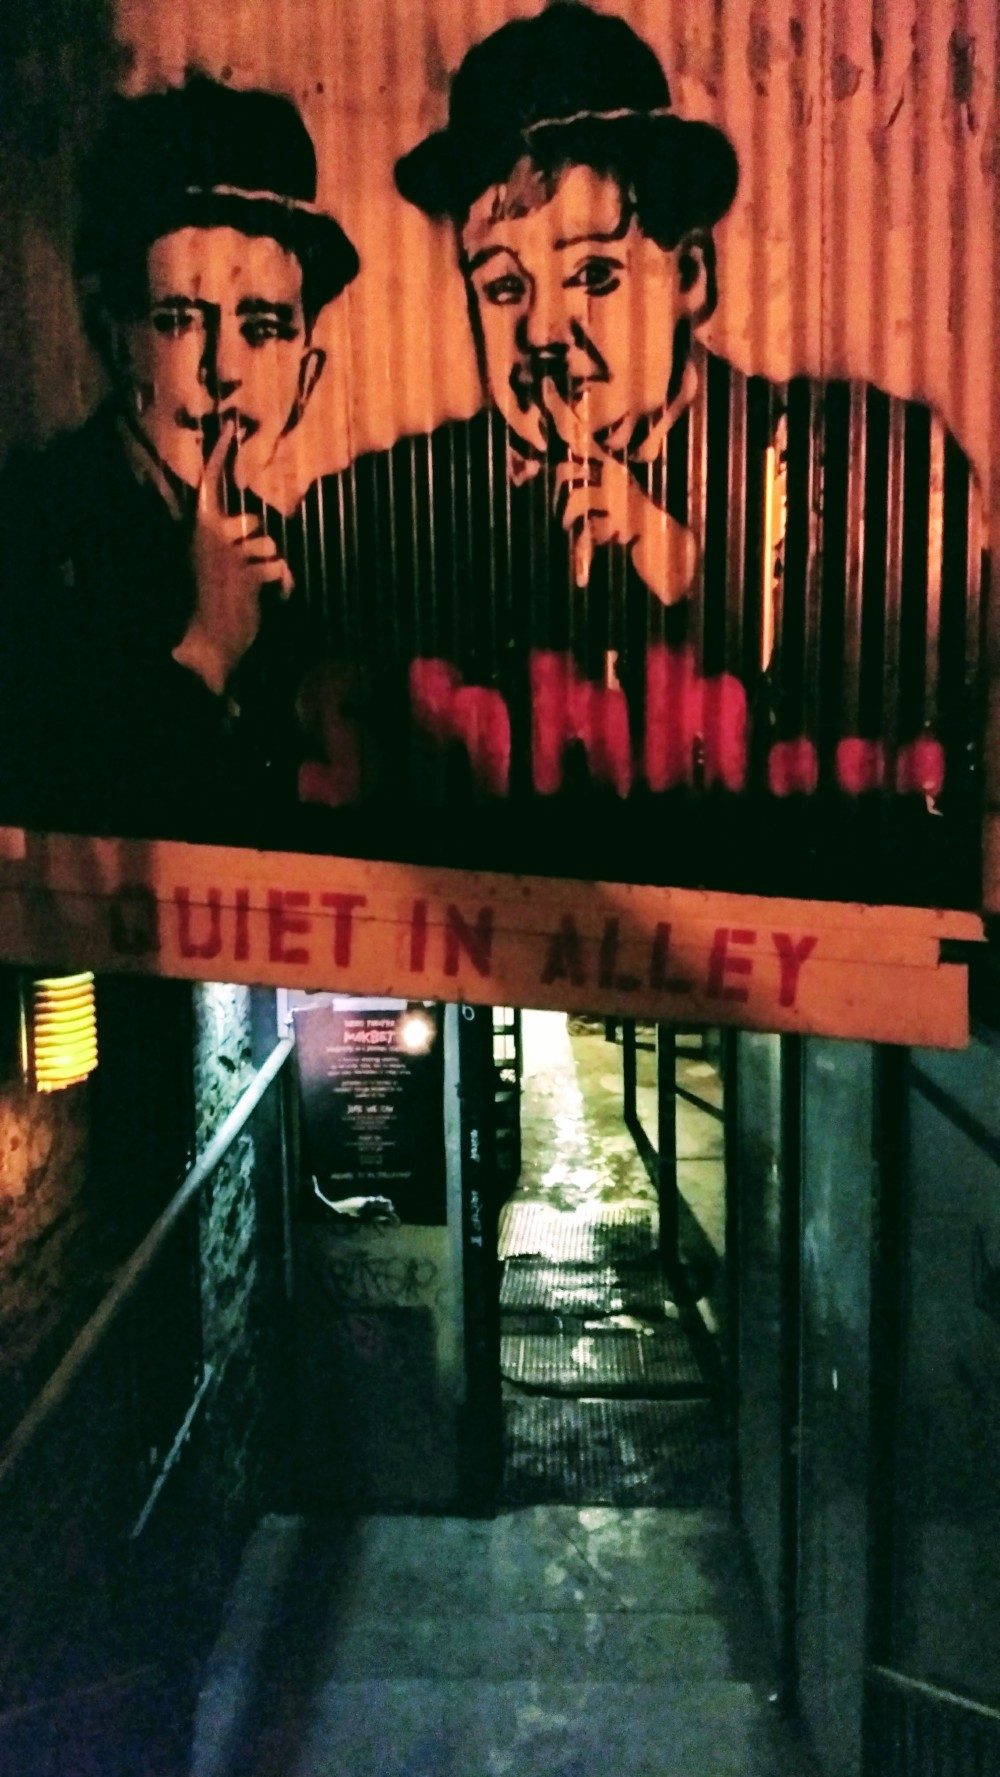 Alleyway entrance to the Back Room